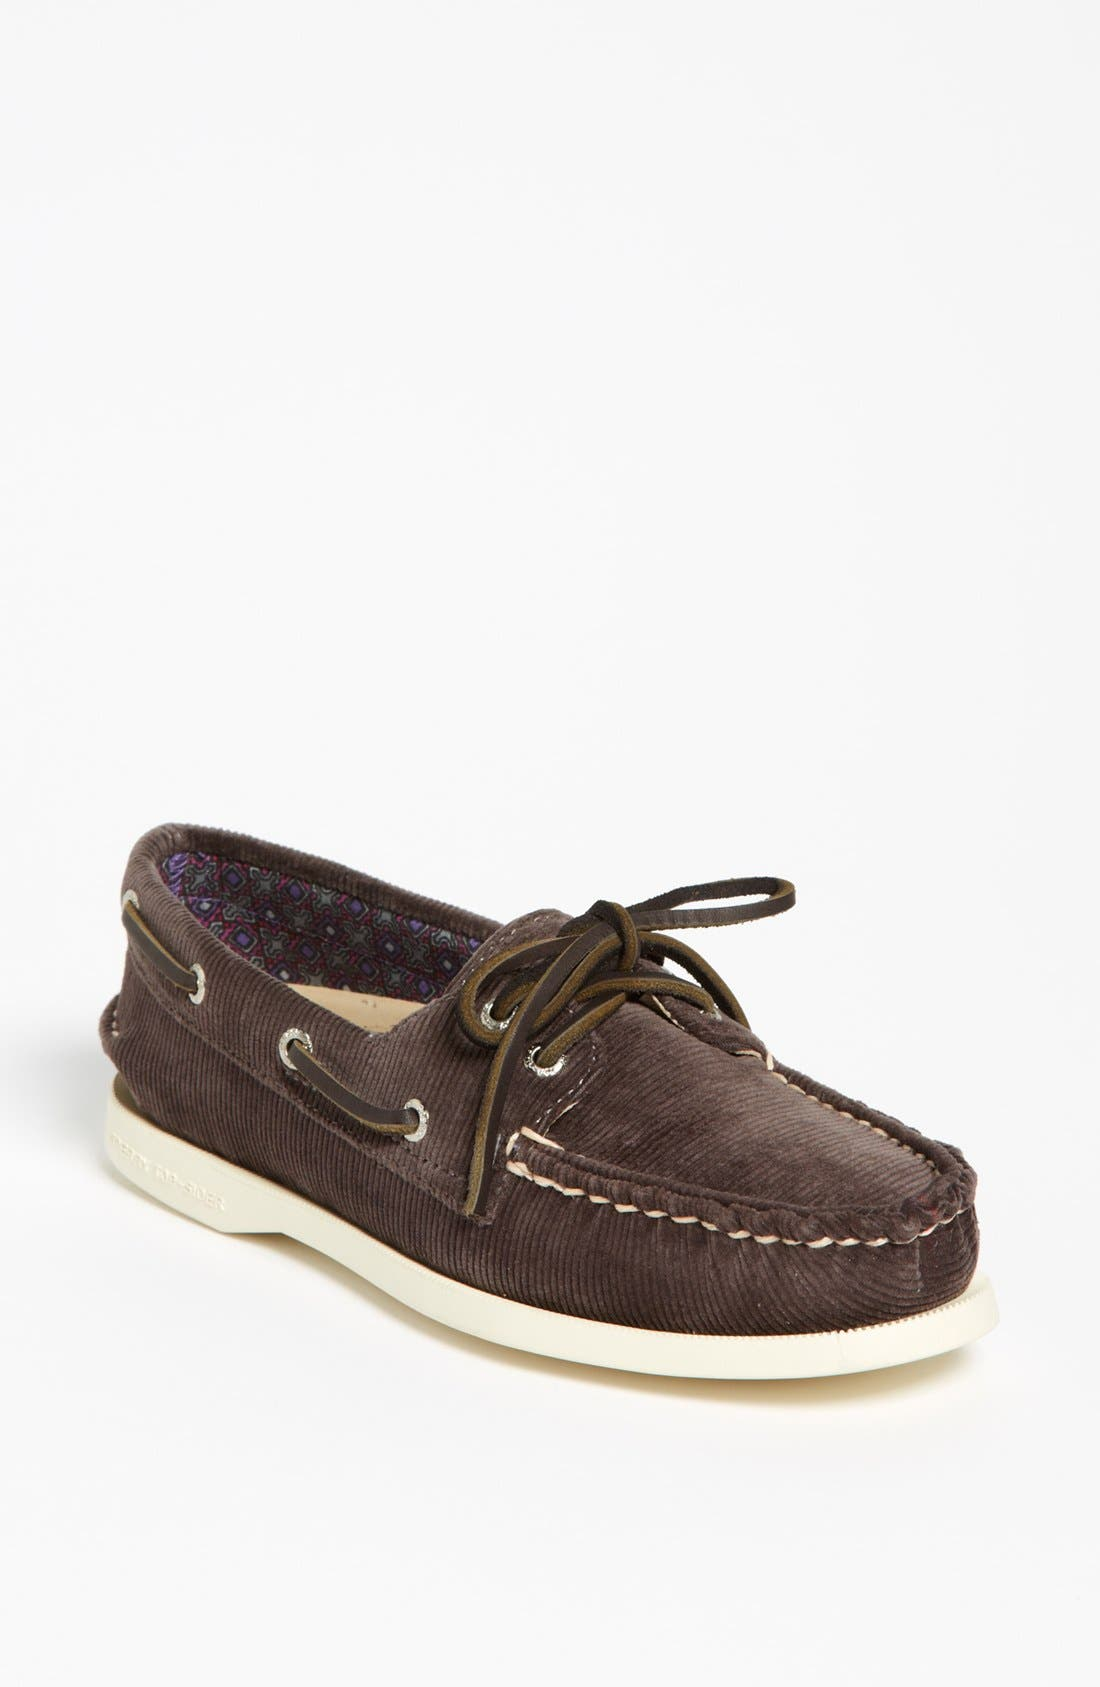 Main Image - Sperry Top-Sider® 'Authentic' Boat Shoe (Women)